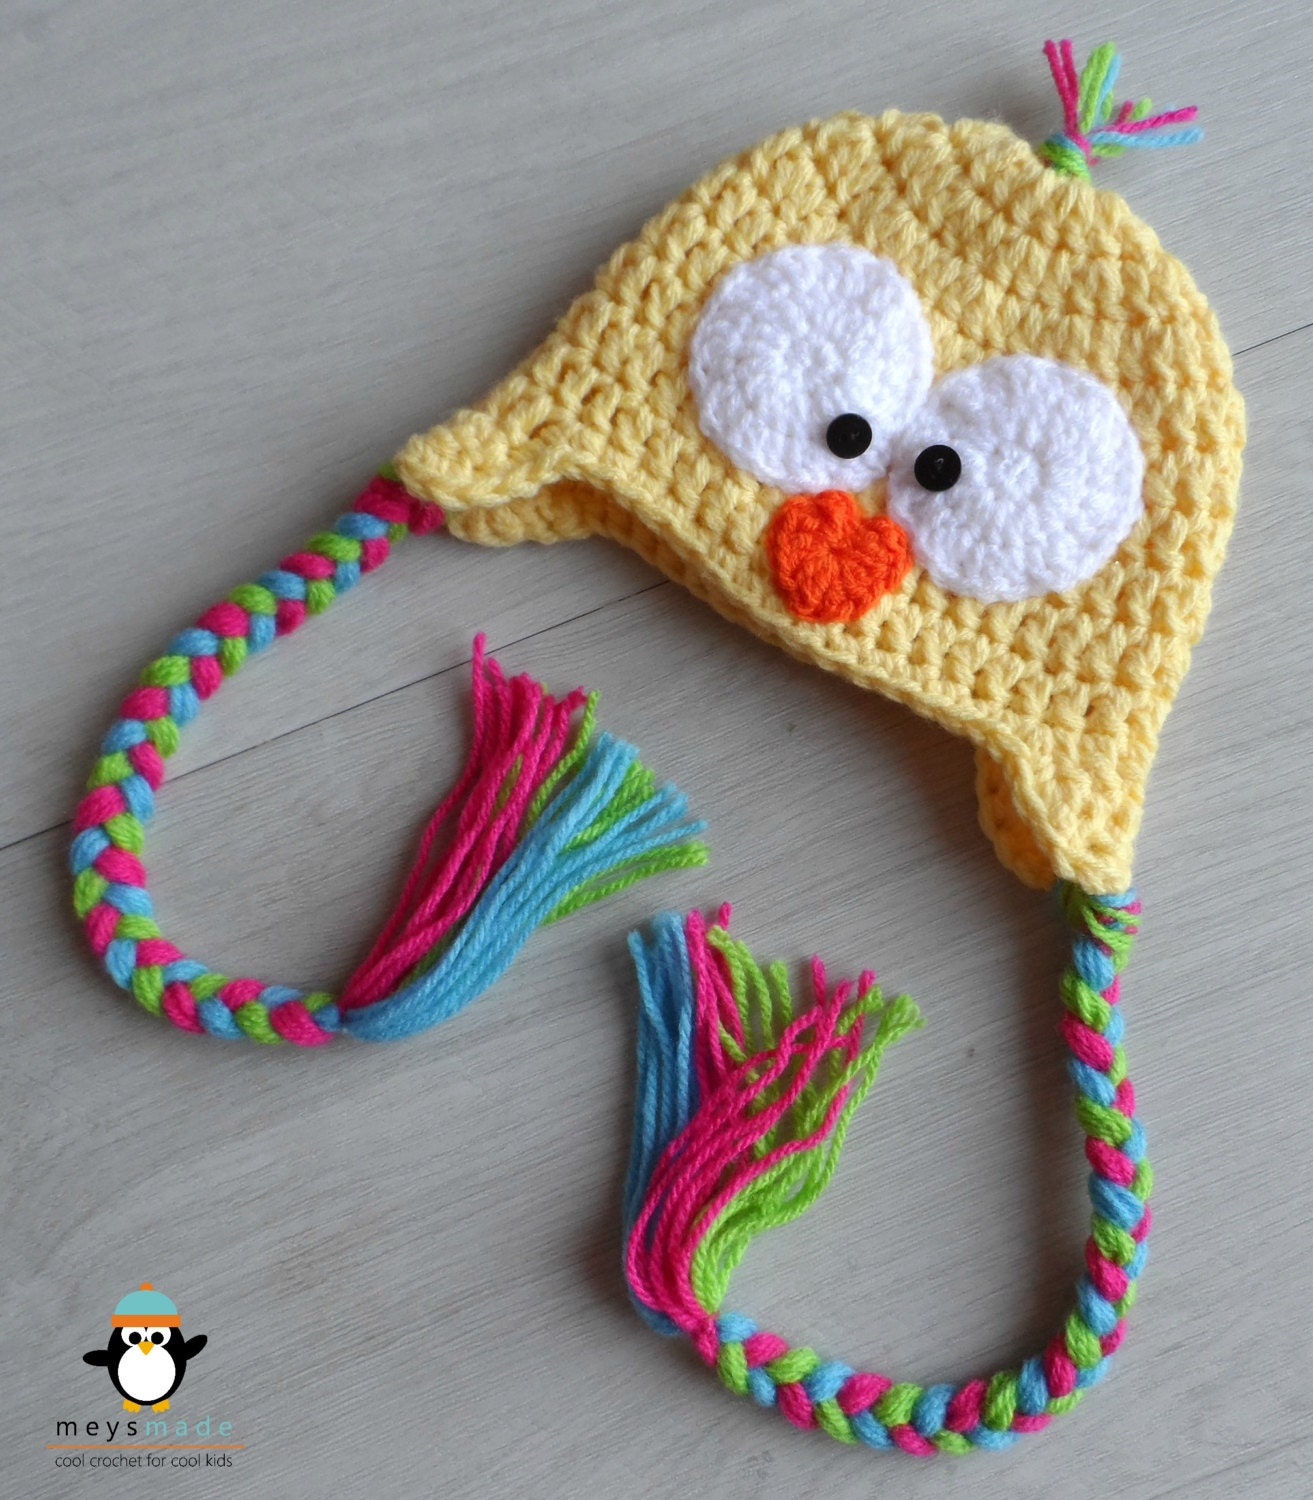 Custom Crochet Easter Chick Earflap Animal Hat for Newborn Baby, Infant Toddler, Child or Cute Photo Prop by MEYS MADE for Cool Kids - MeysMadeCoolCrochet